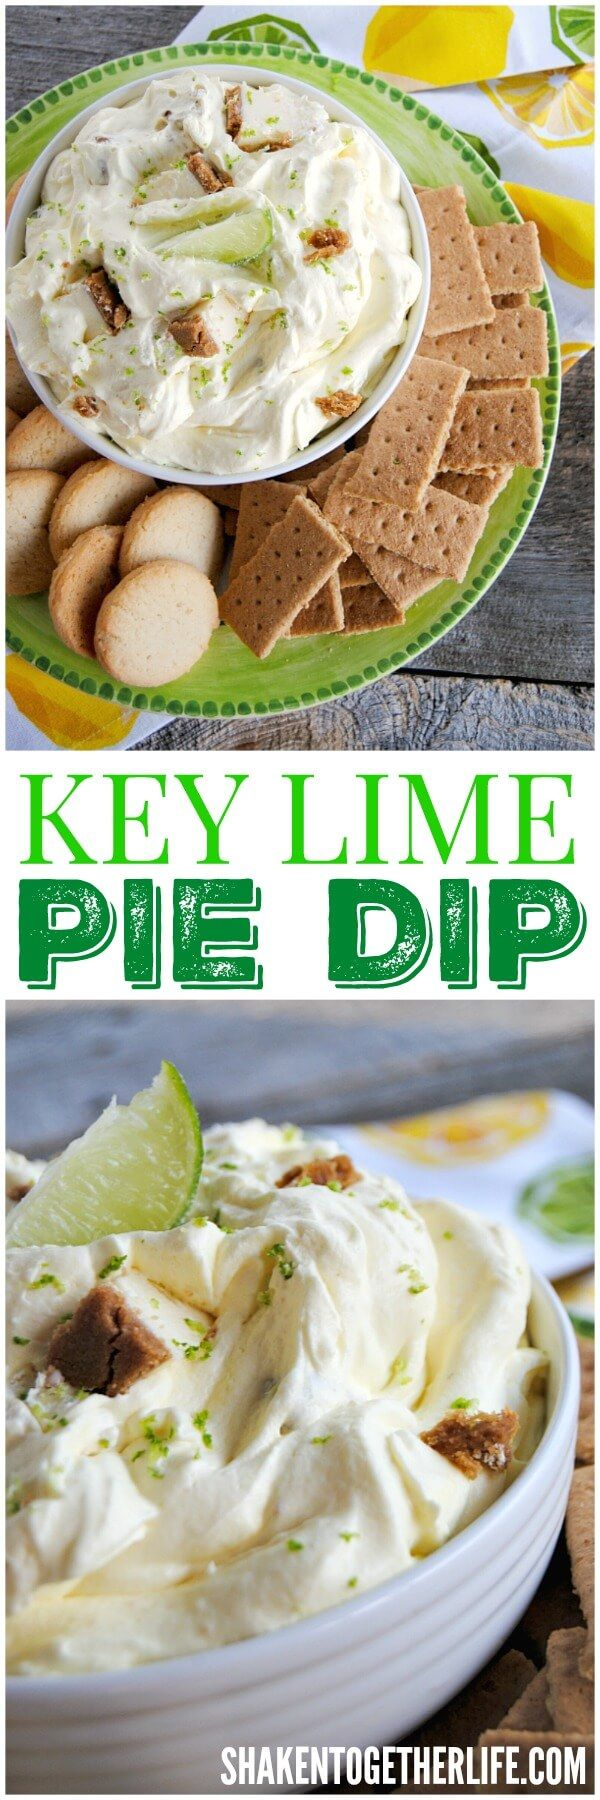 Key Lime Pie Dip - this super easy no bake dessert dip has bite sized pieces of key lime pie stirred right in! It is absolutely perfect for any party, picnic or potluck! #EasterMadeEasy #nobake #dessert ad